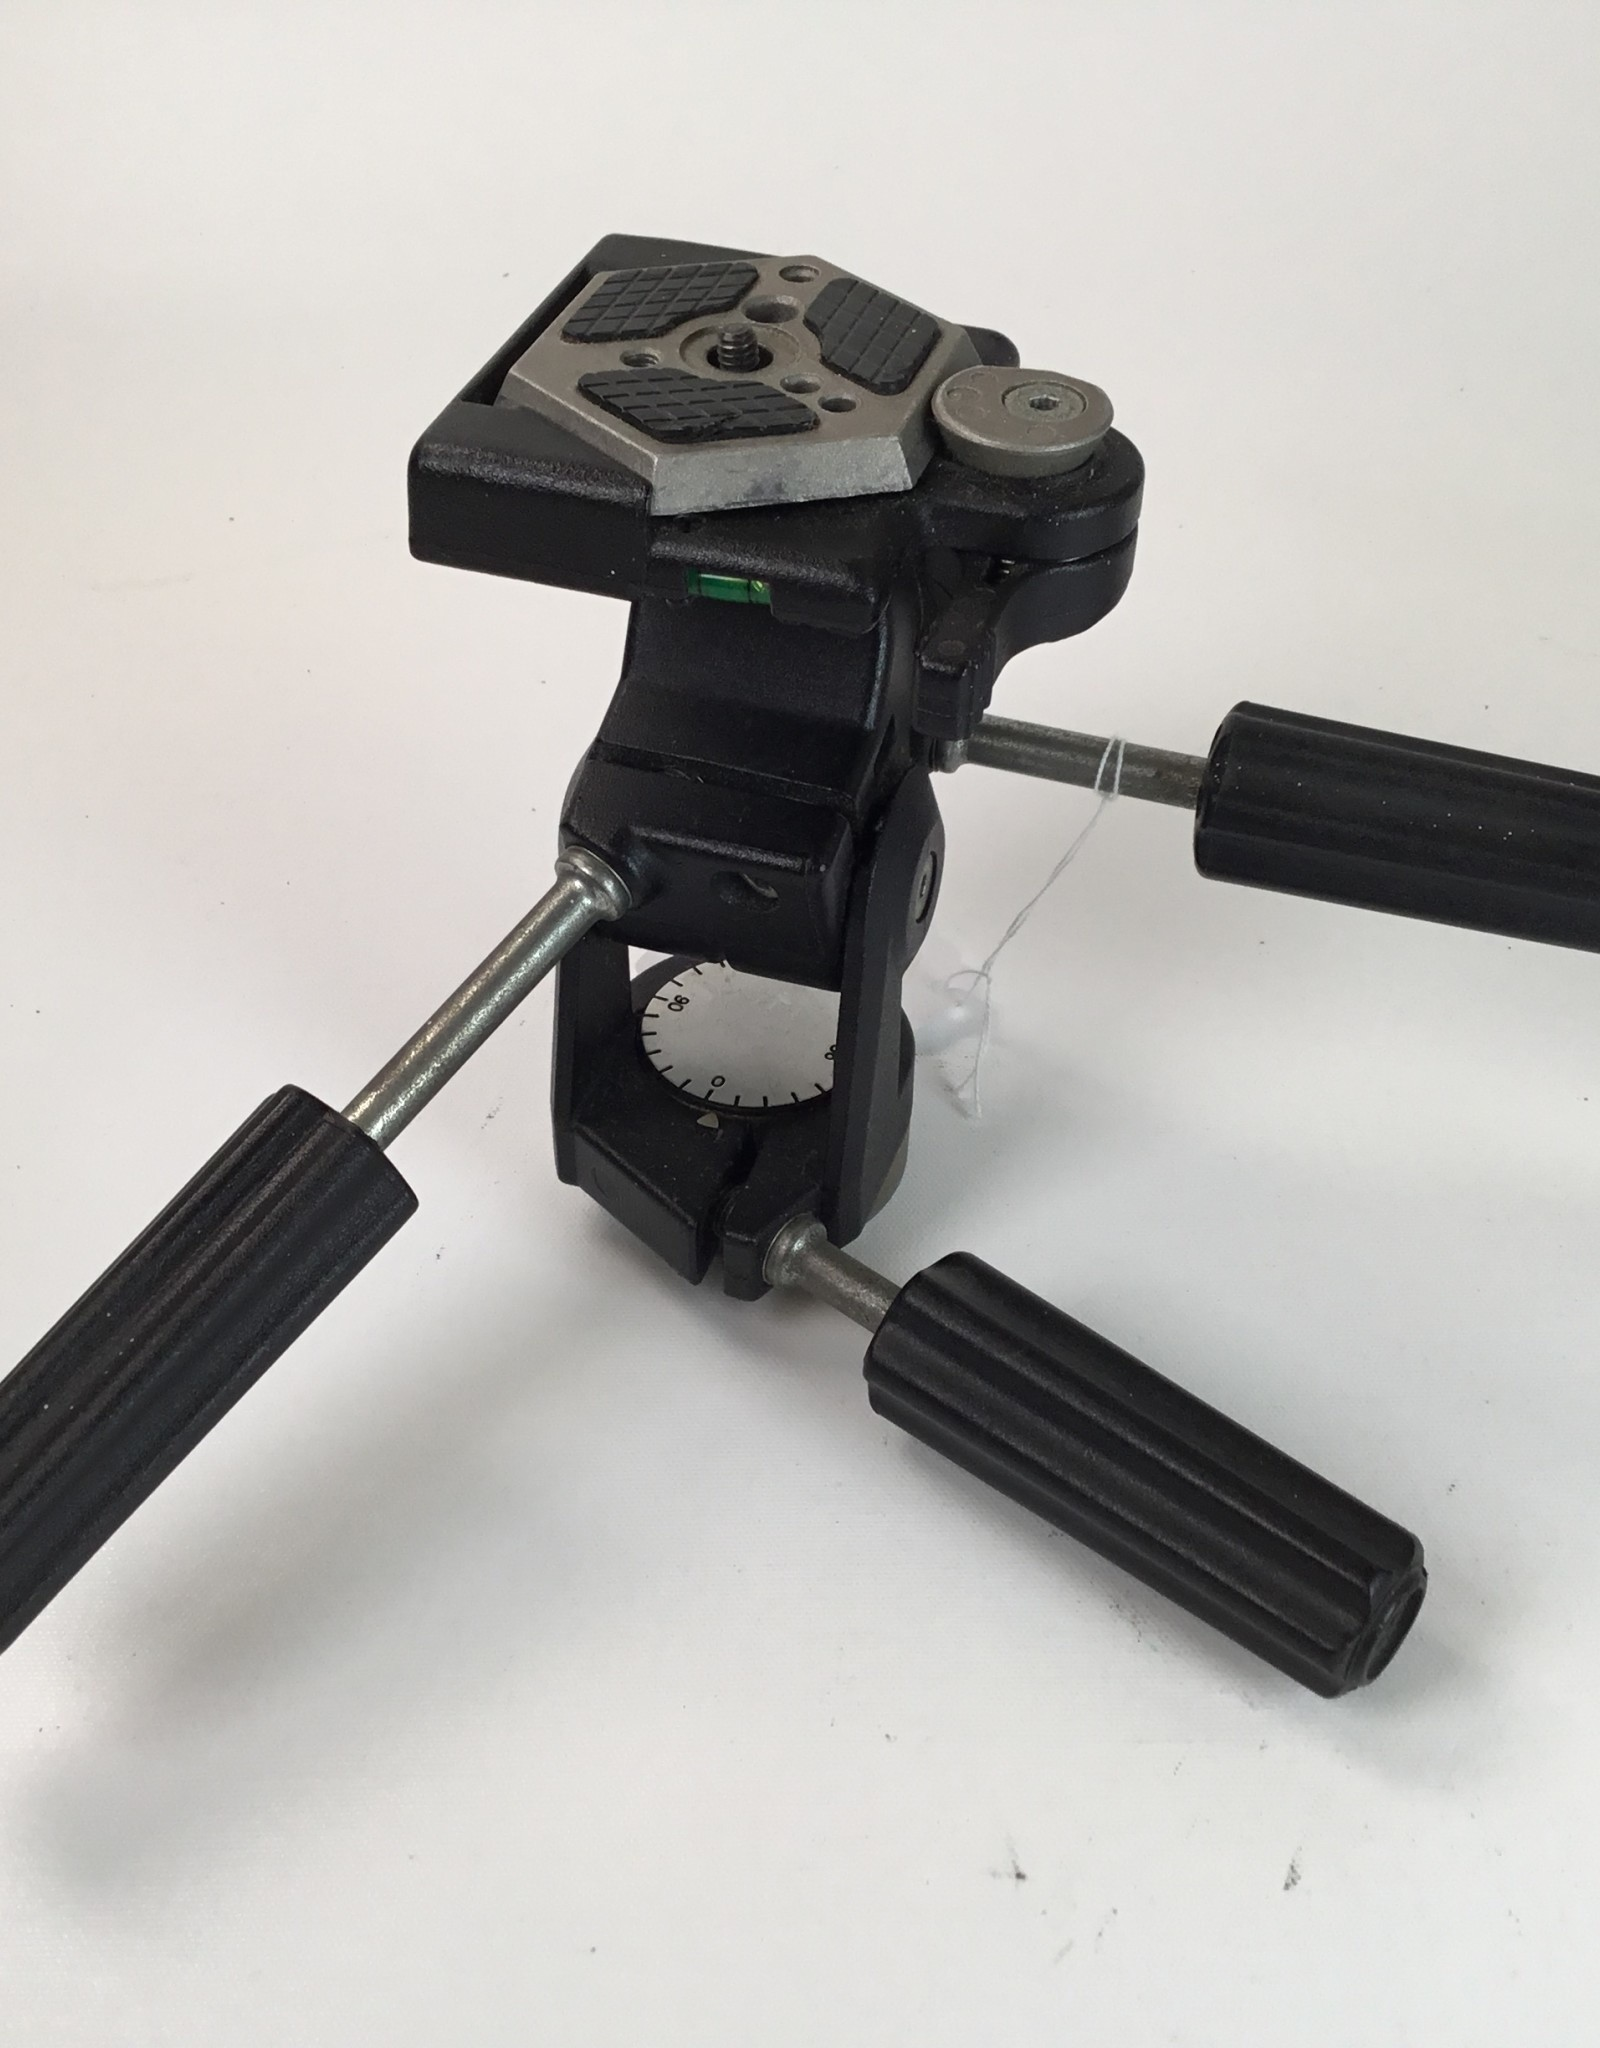 MANFROTTO Manfrotto 3047 Head Used EX